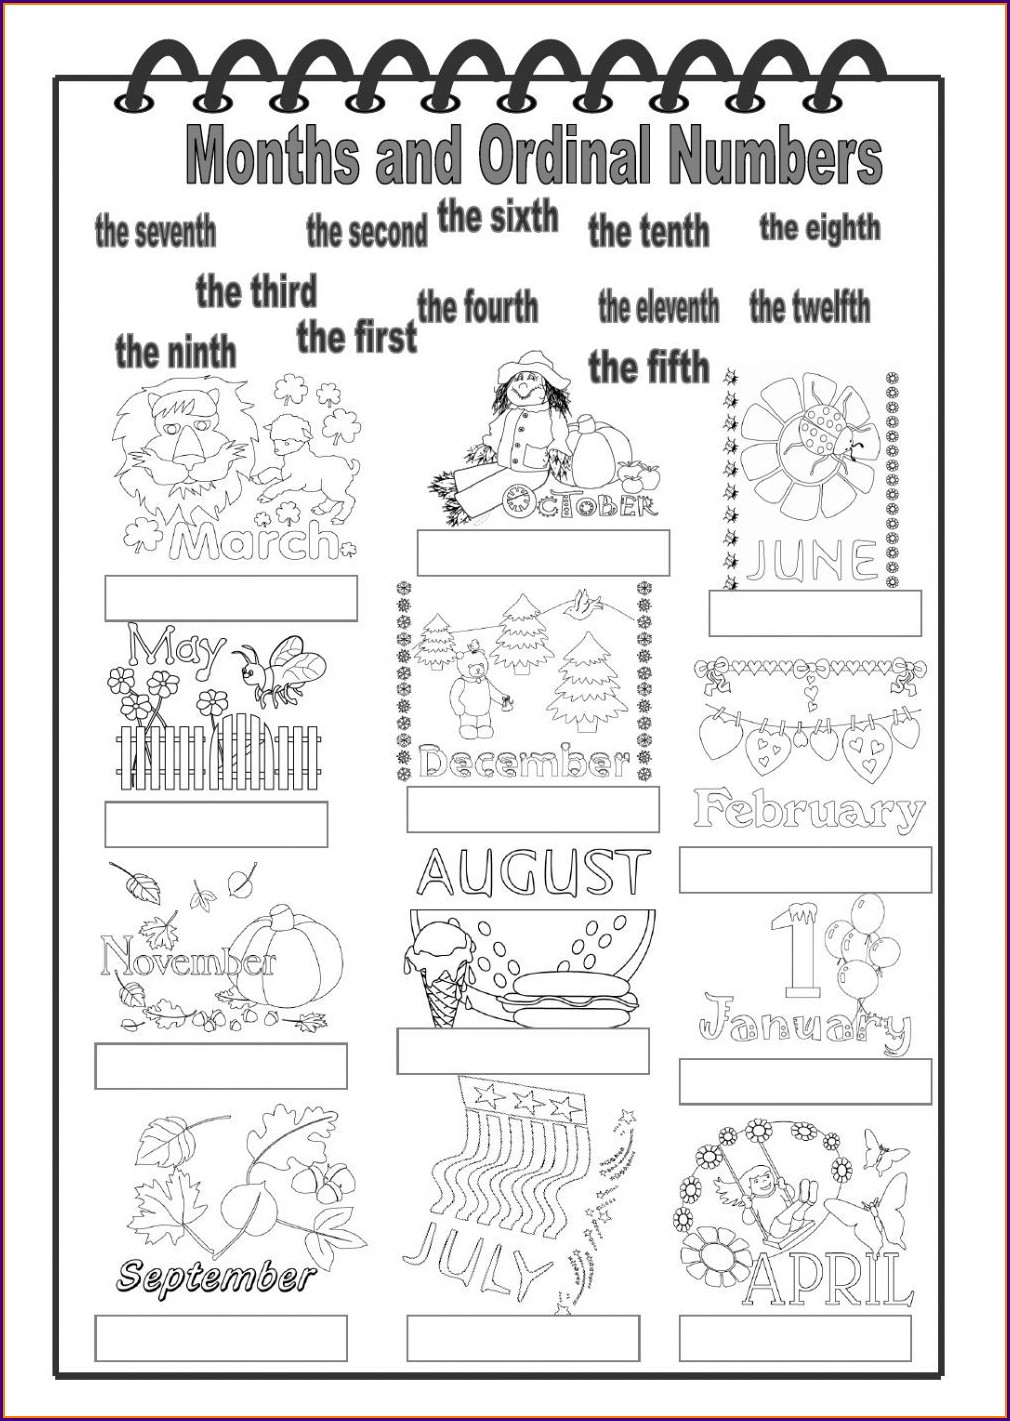 Ordinal Numbers Months Exercises